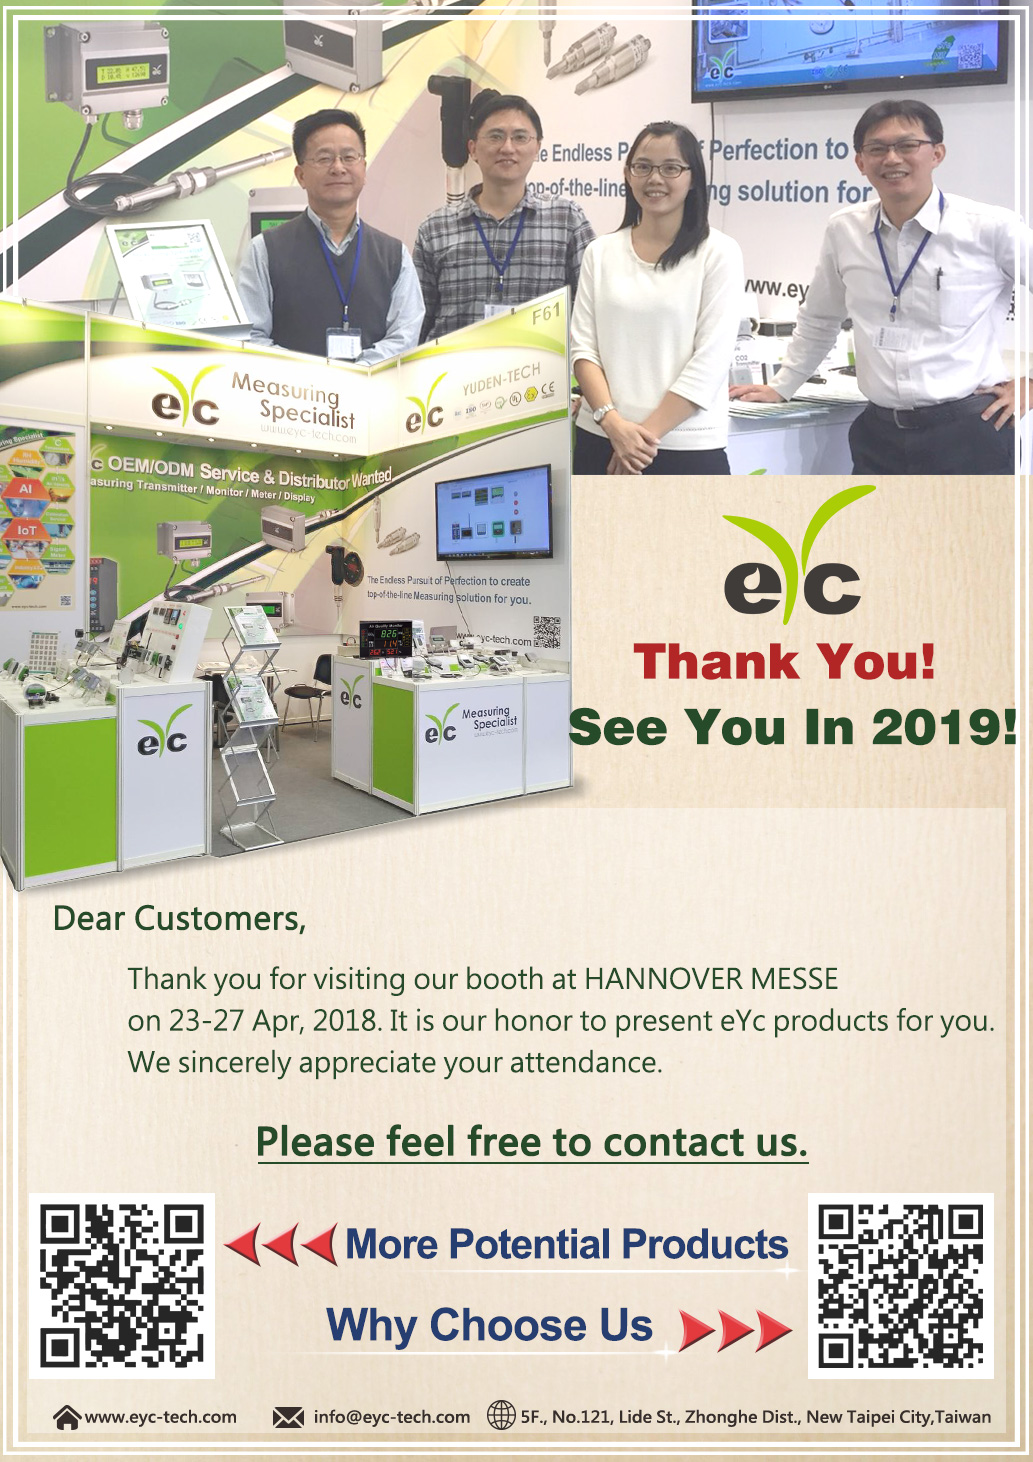 eyc-hannover-messe-2018-thanks-card.jpg